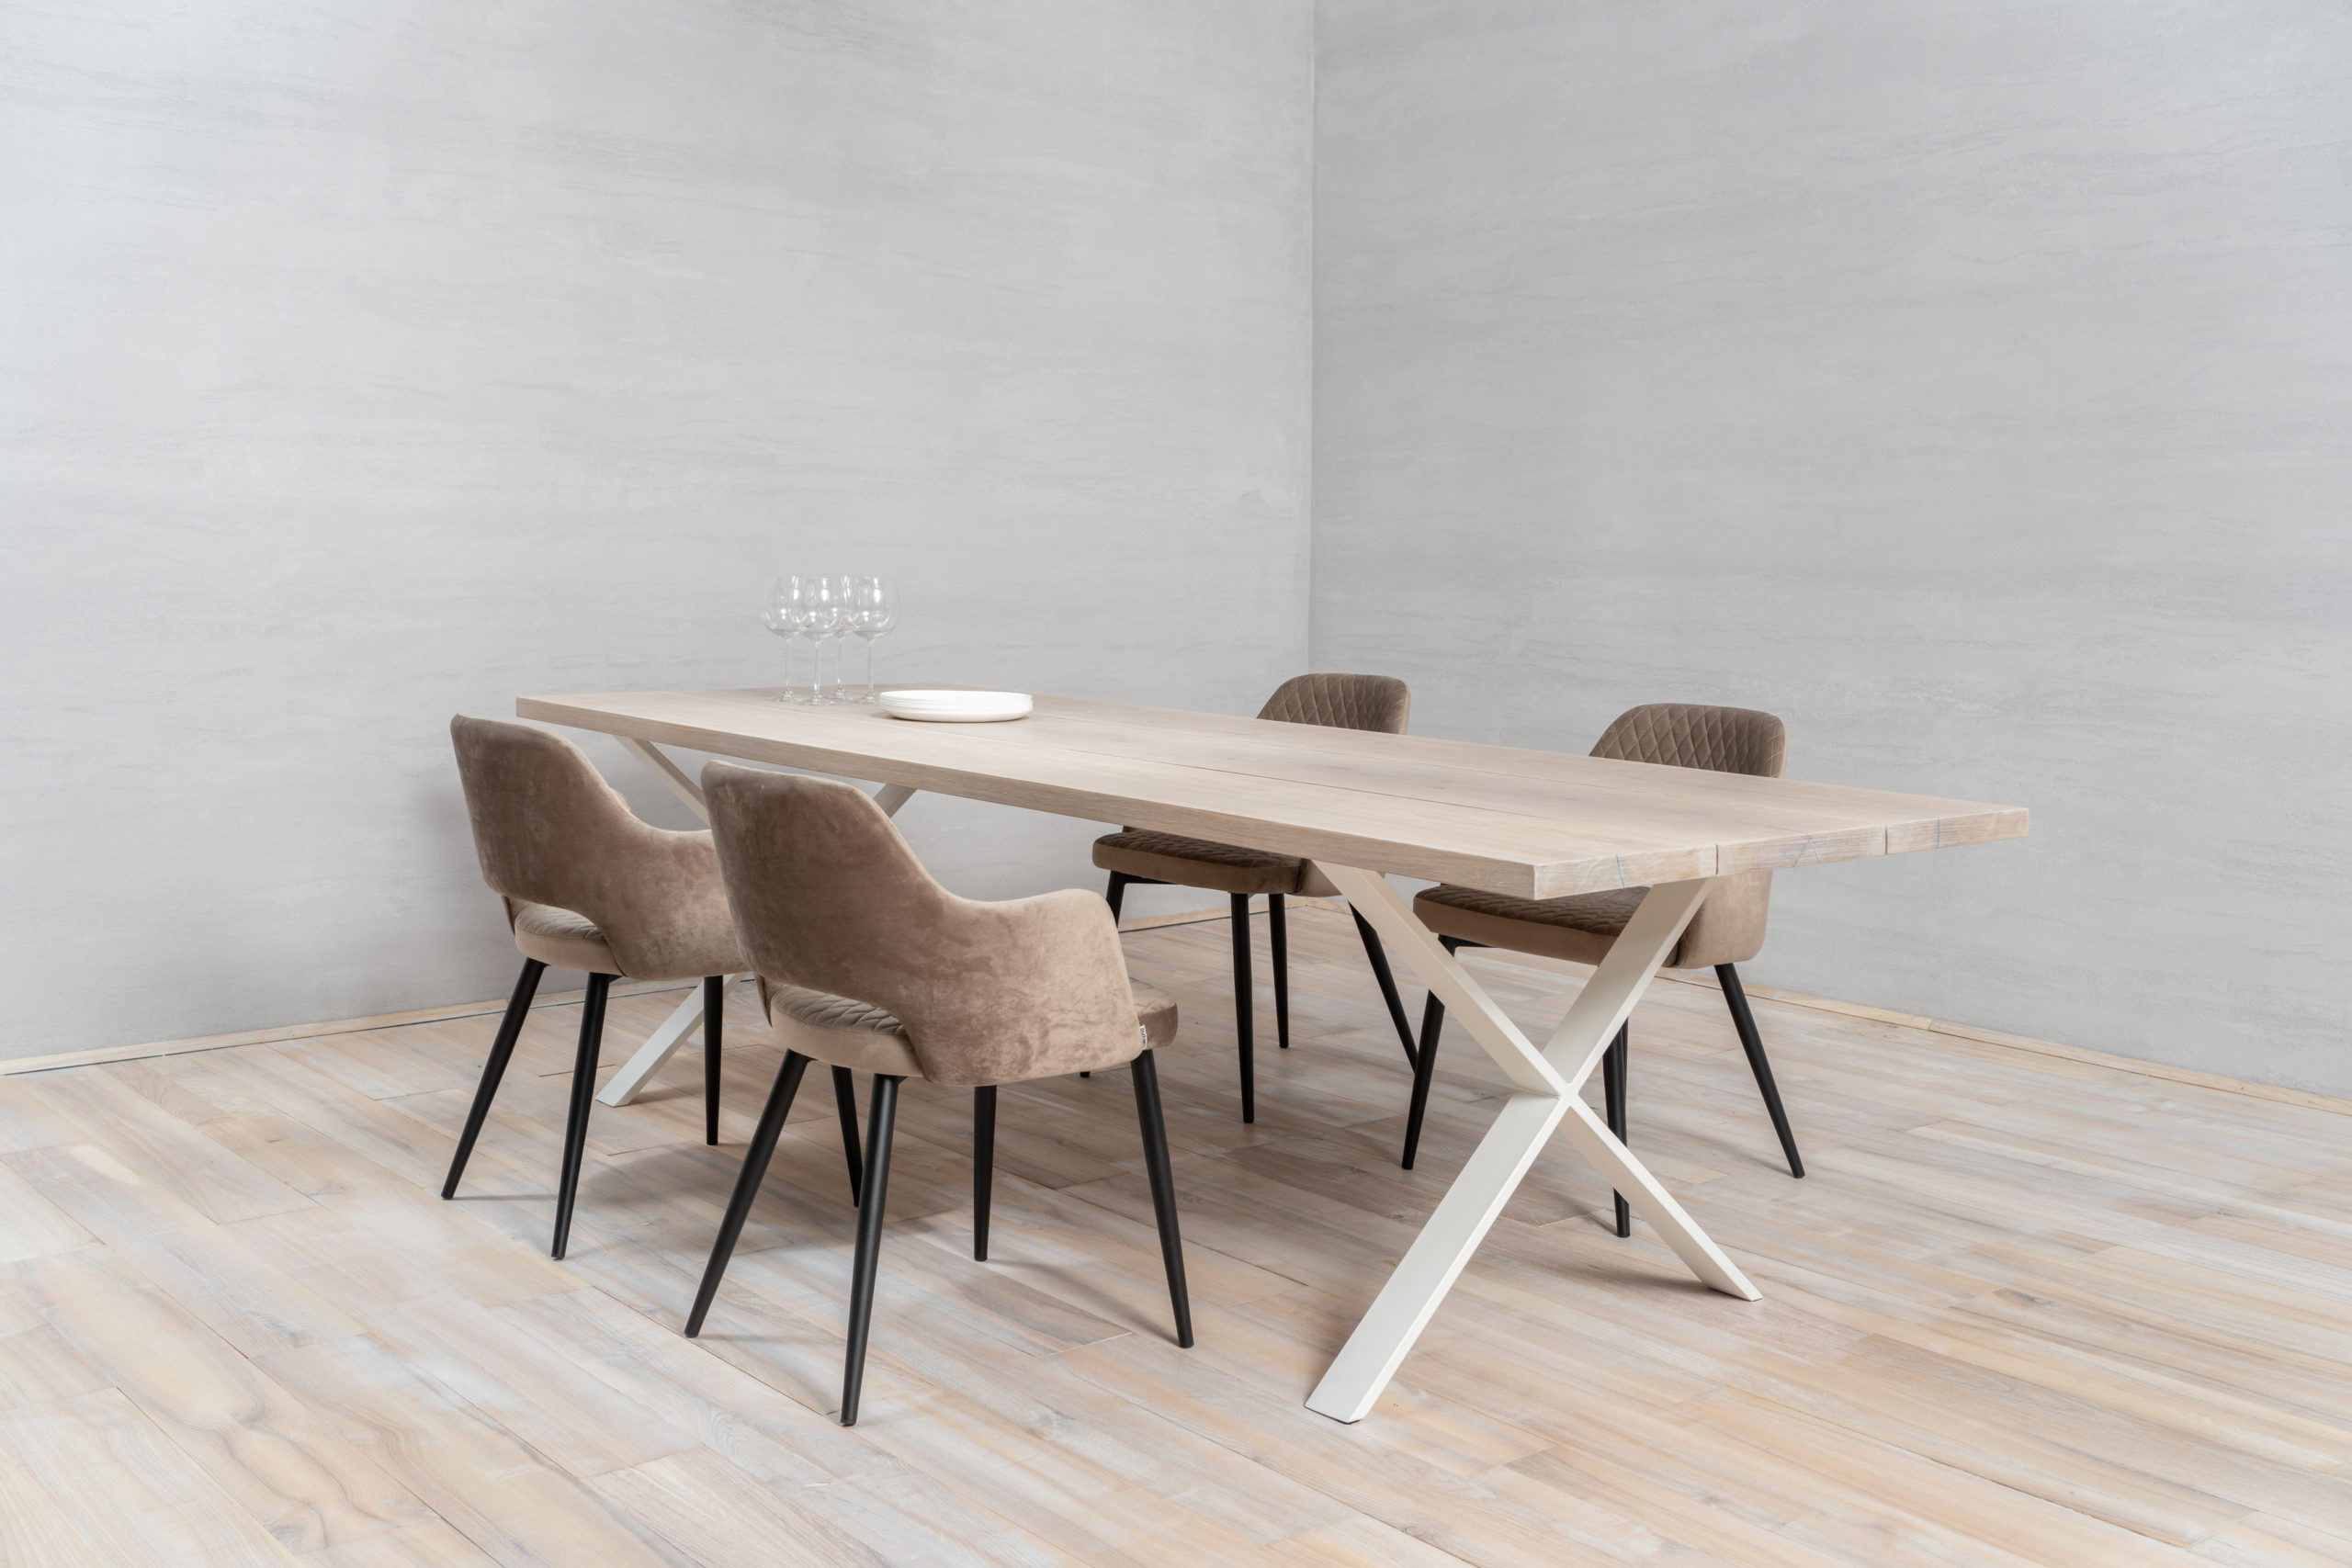 Oak TableTops 3 planks